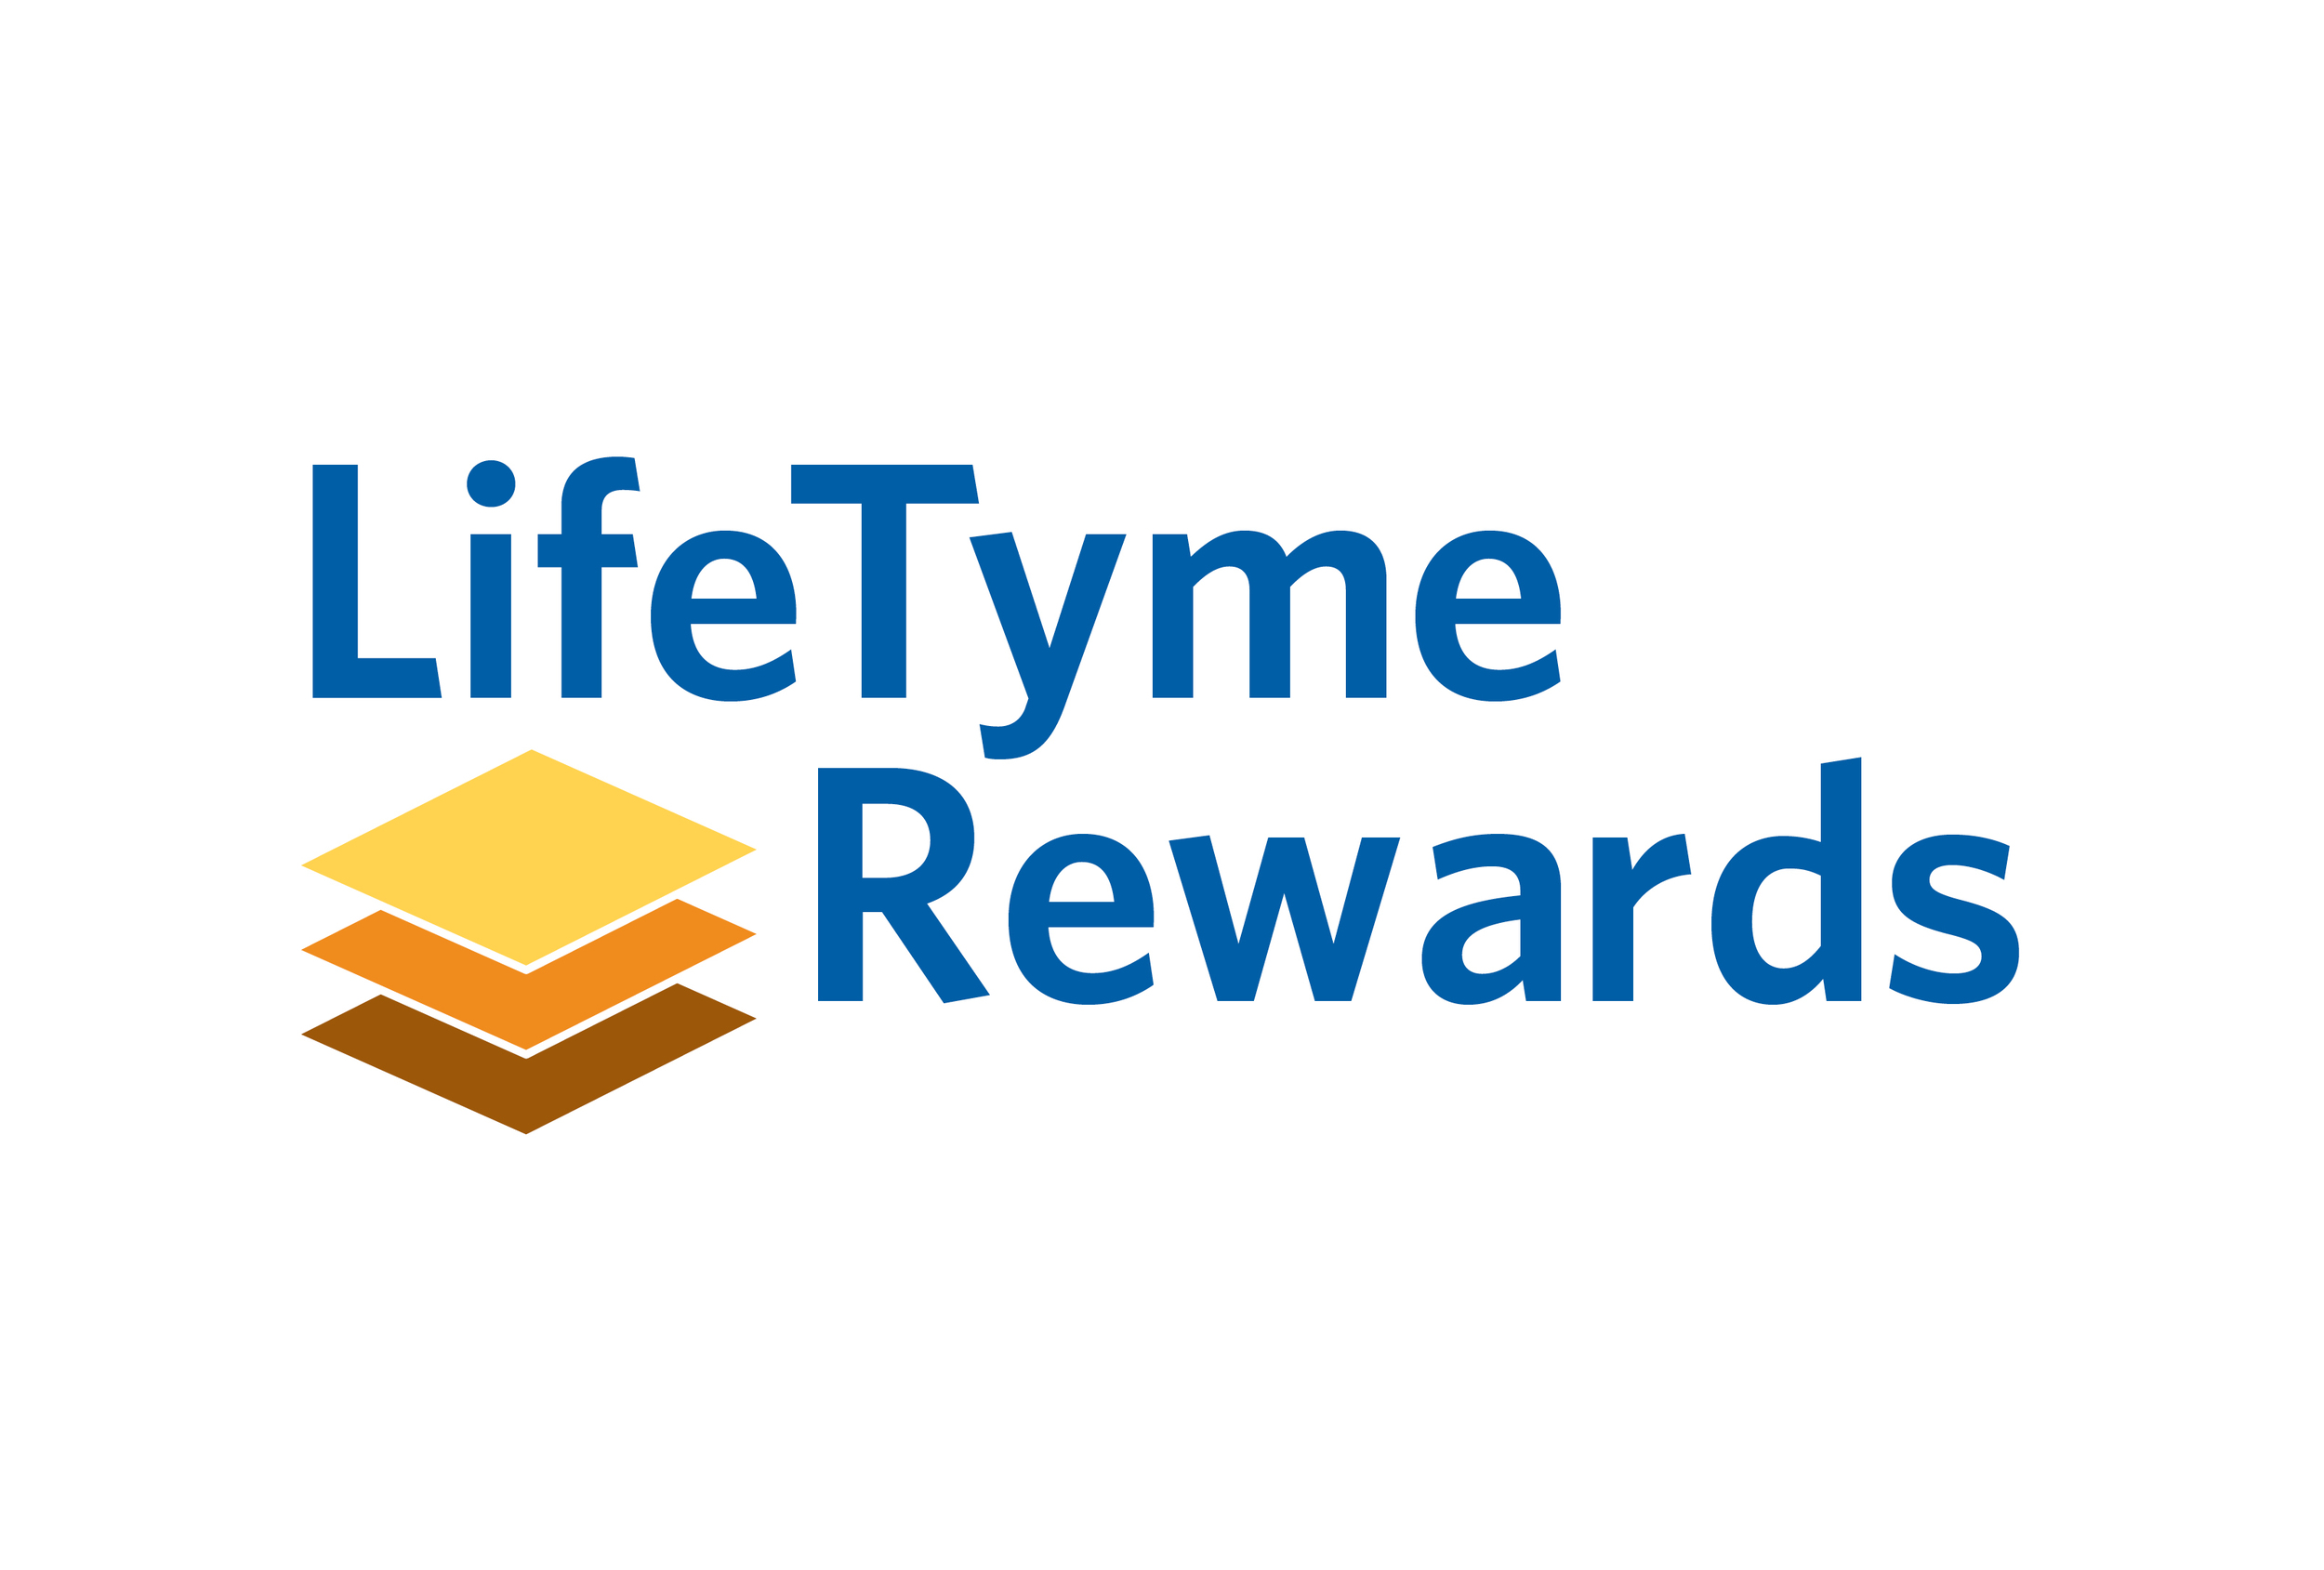 LifeTyme Rewards